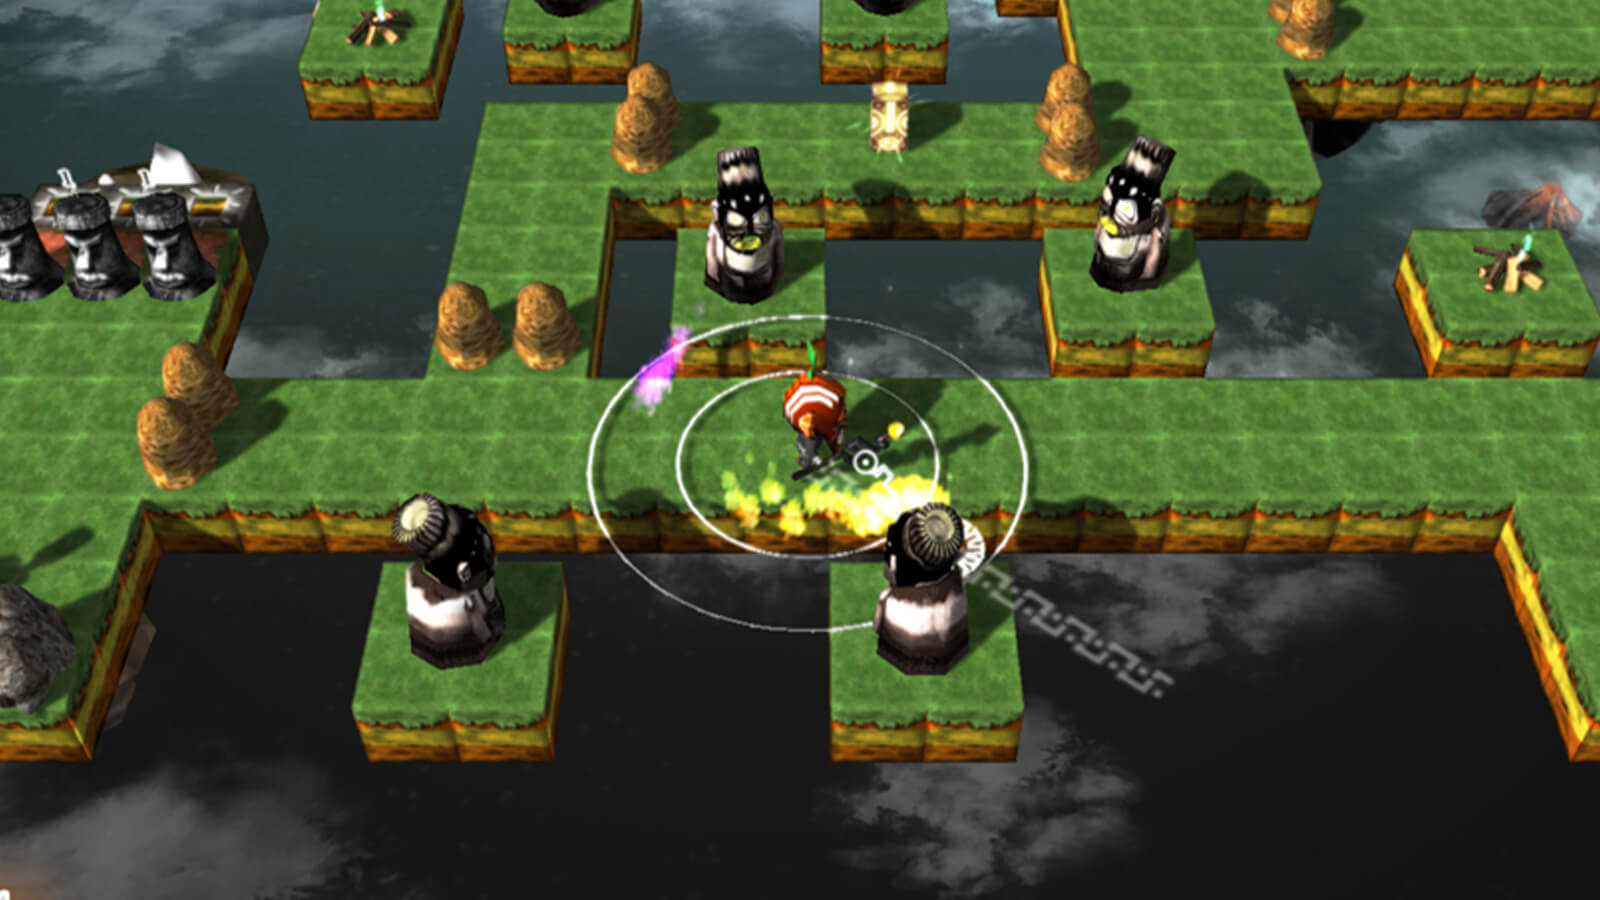 The player's character stands on a green grid platform floating in space as four black-and-white figures stare on.